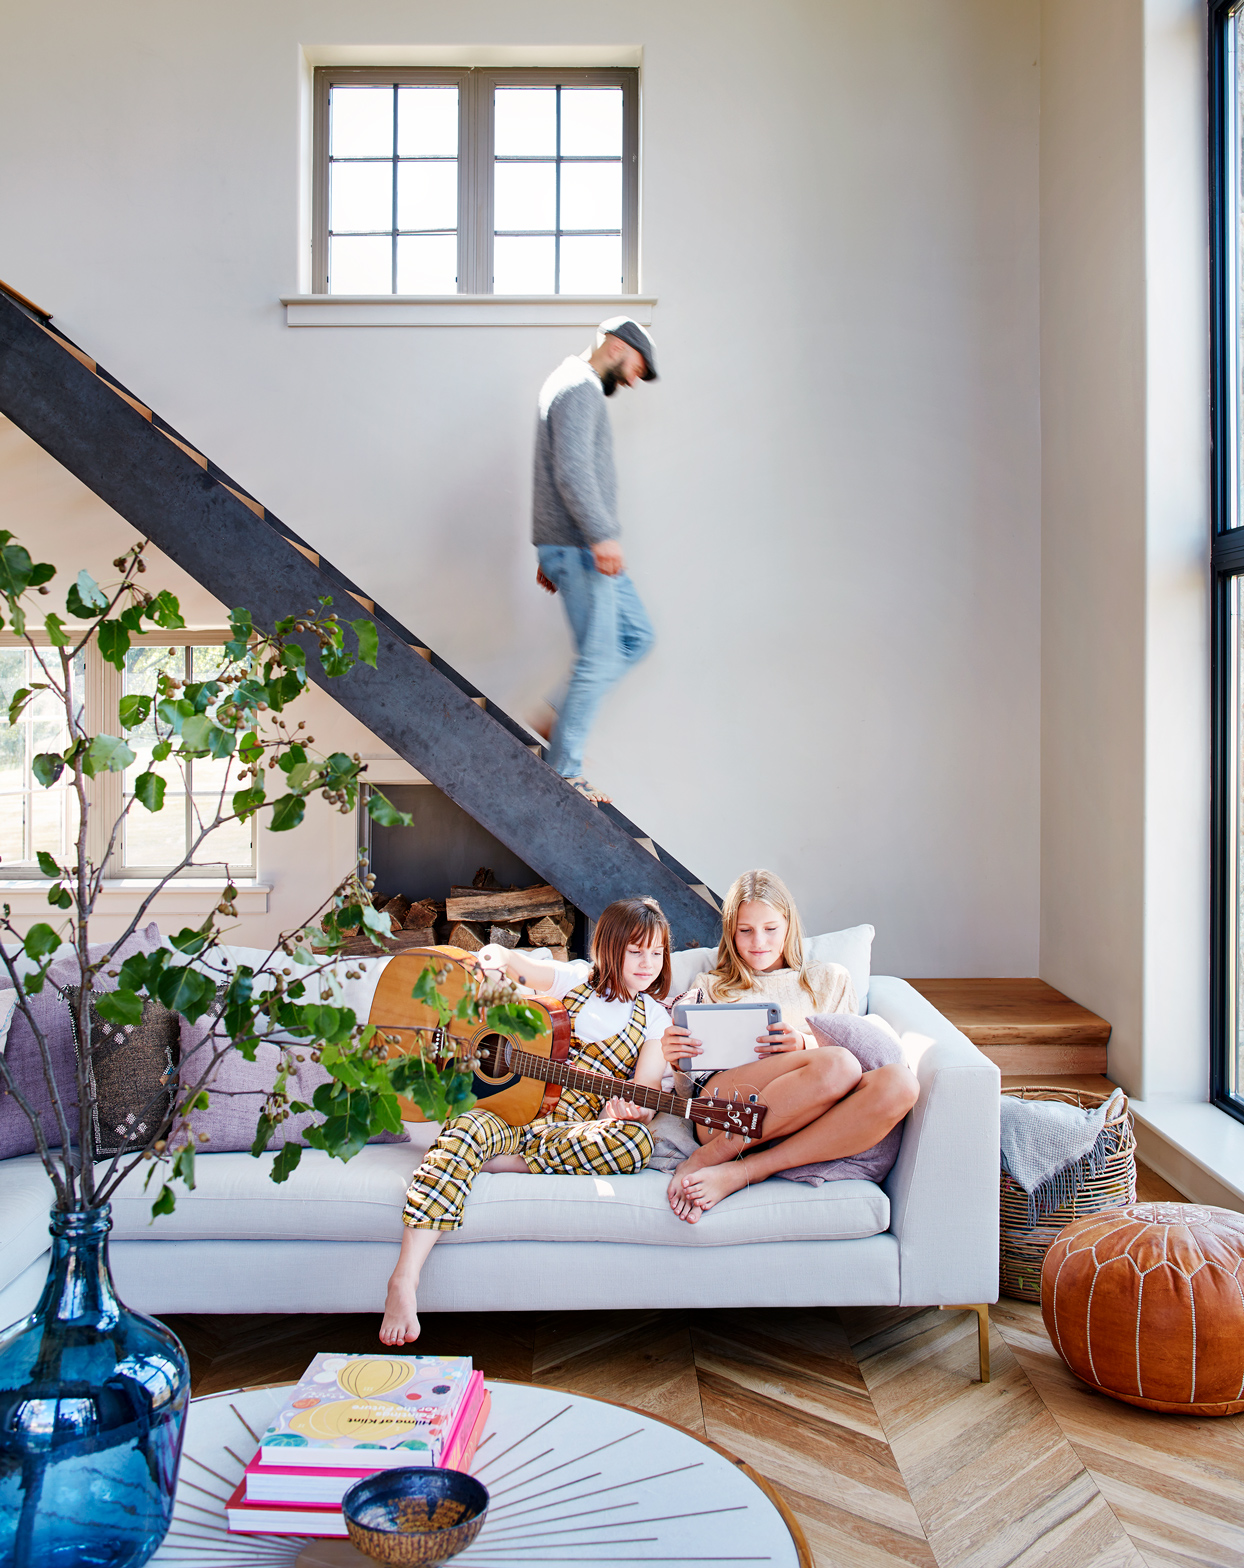 Hill's husband and daughters in the living room